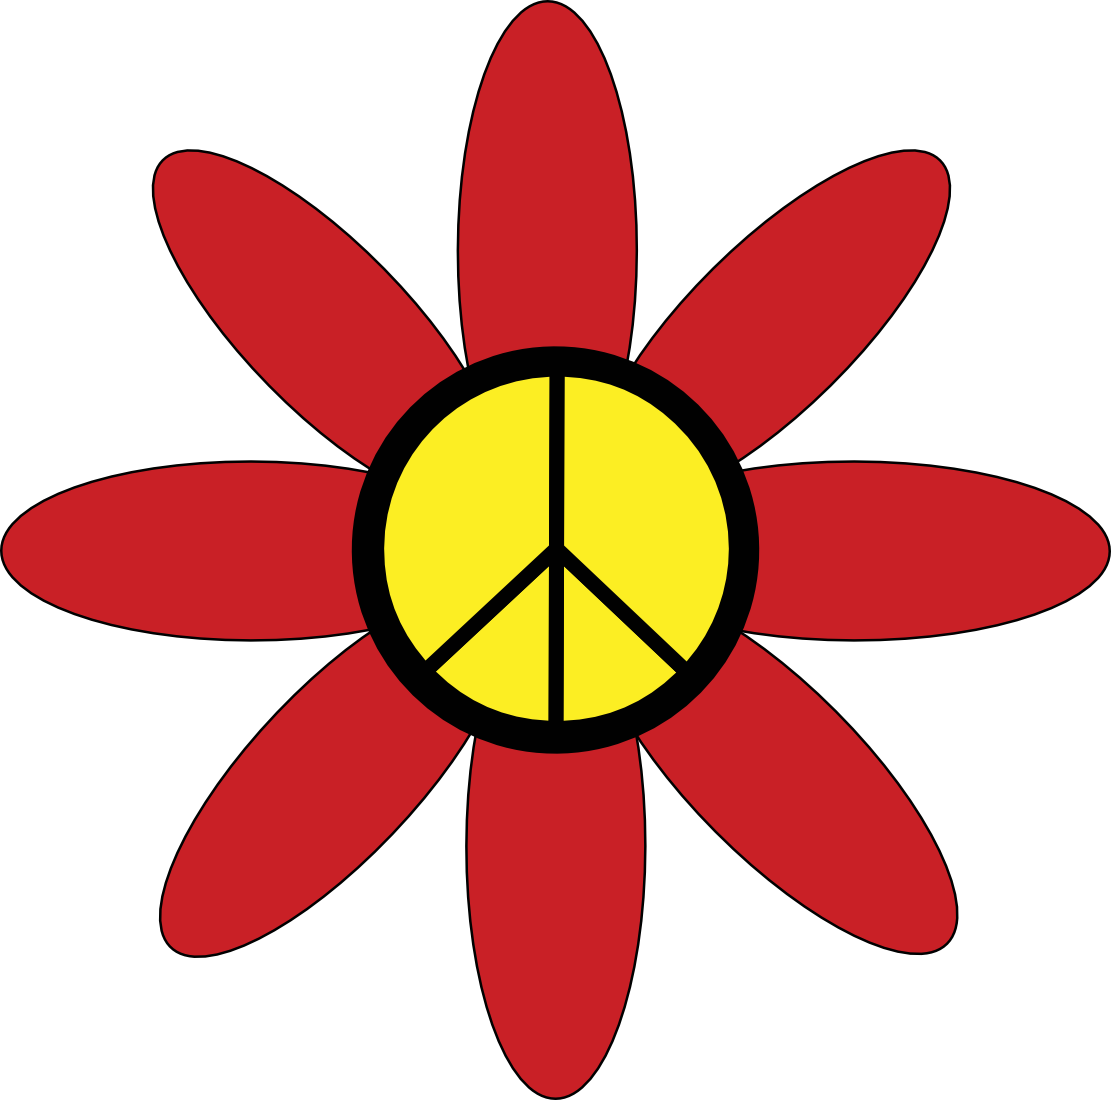 Clip Arts Related To : Hippie clipart hd - Hippie PNG HD